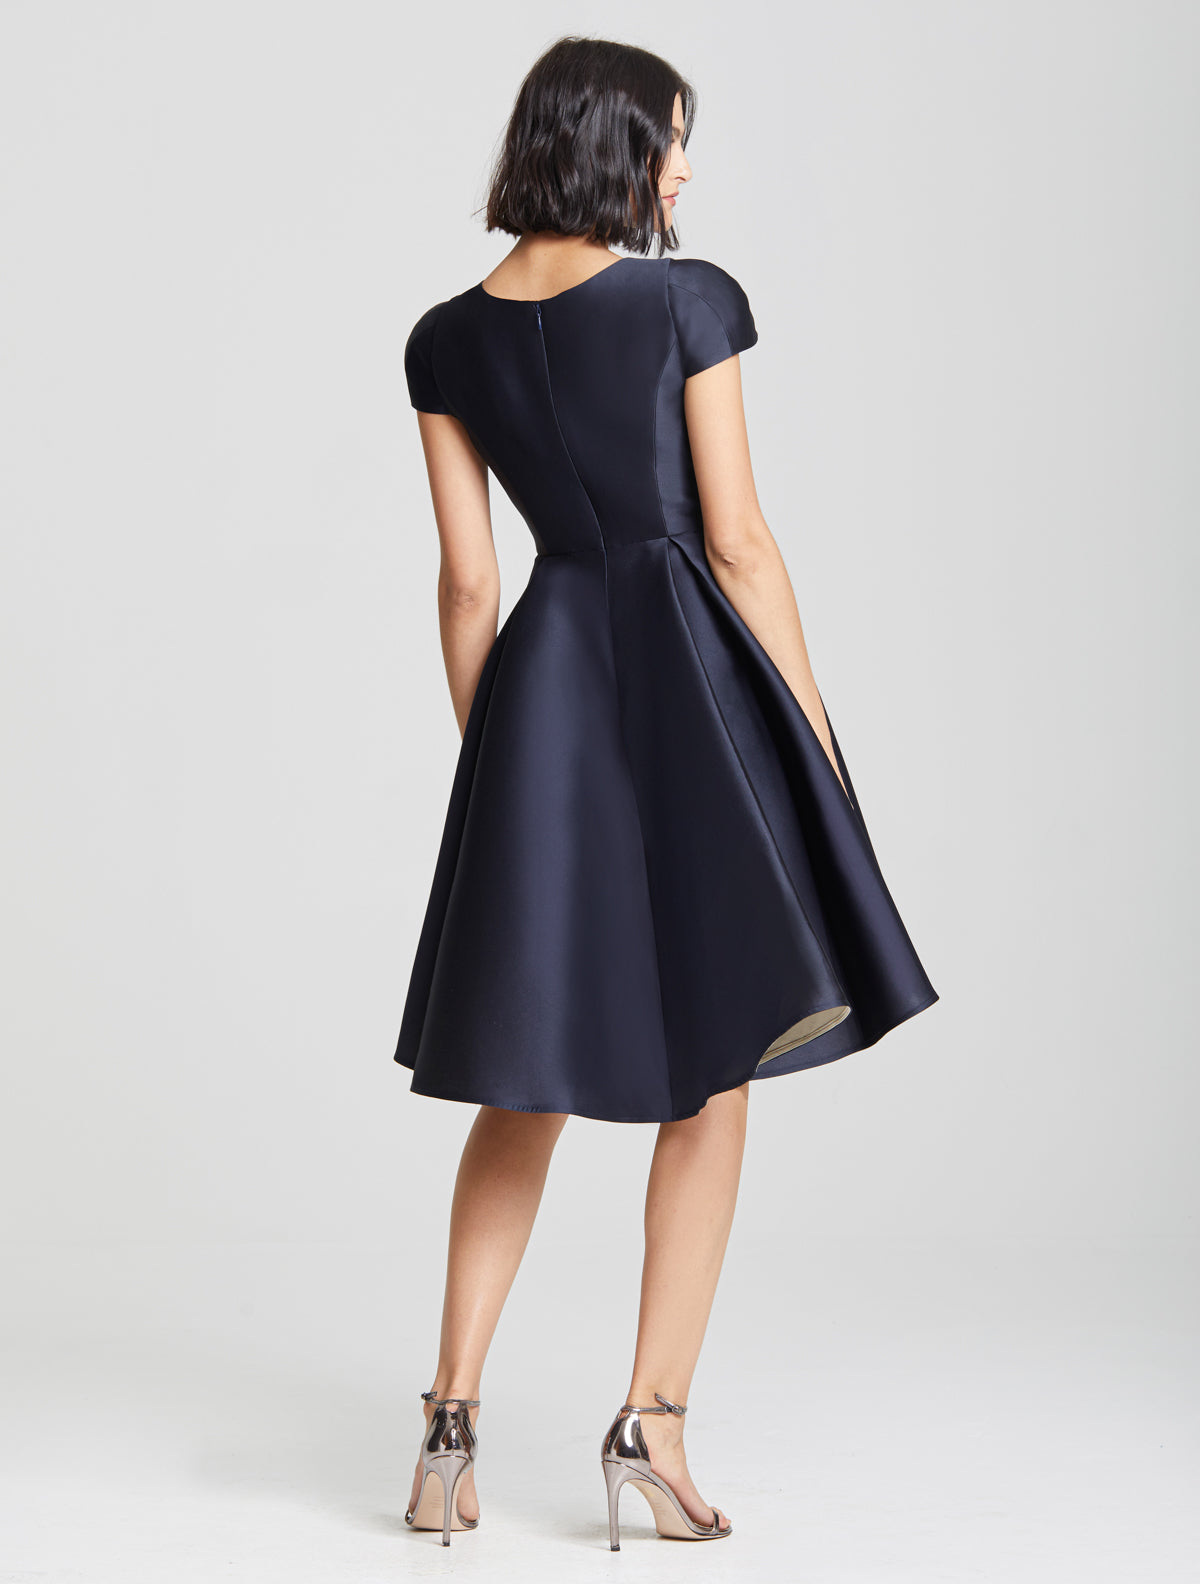 Dramatic Skirt Dress - Halston